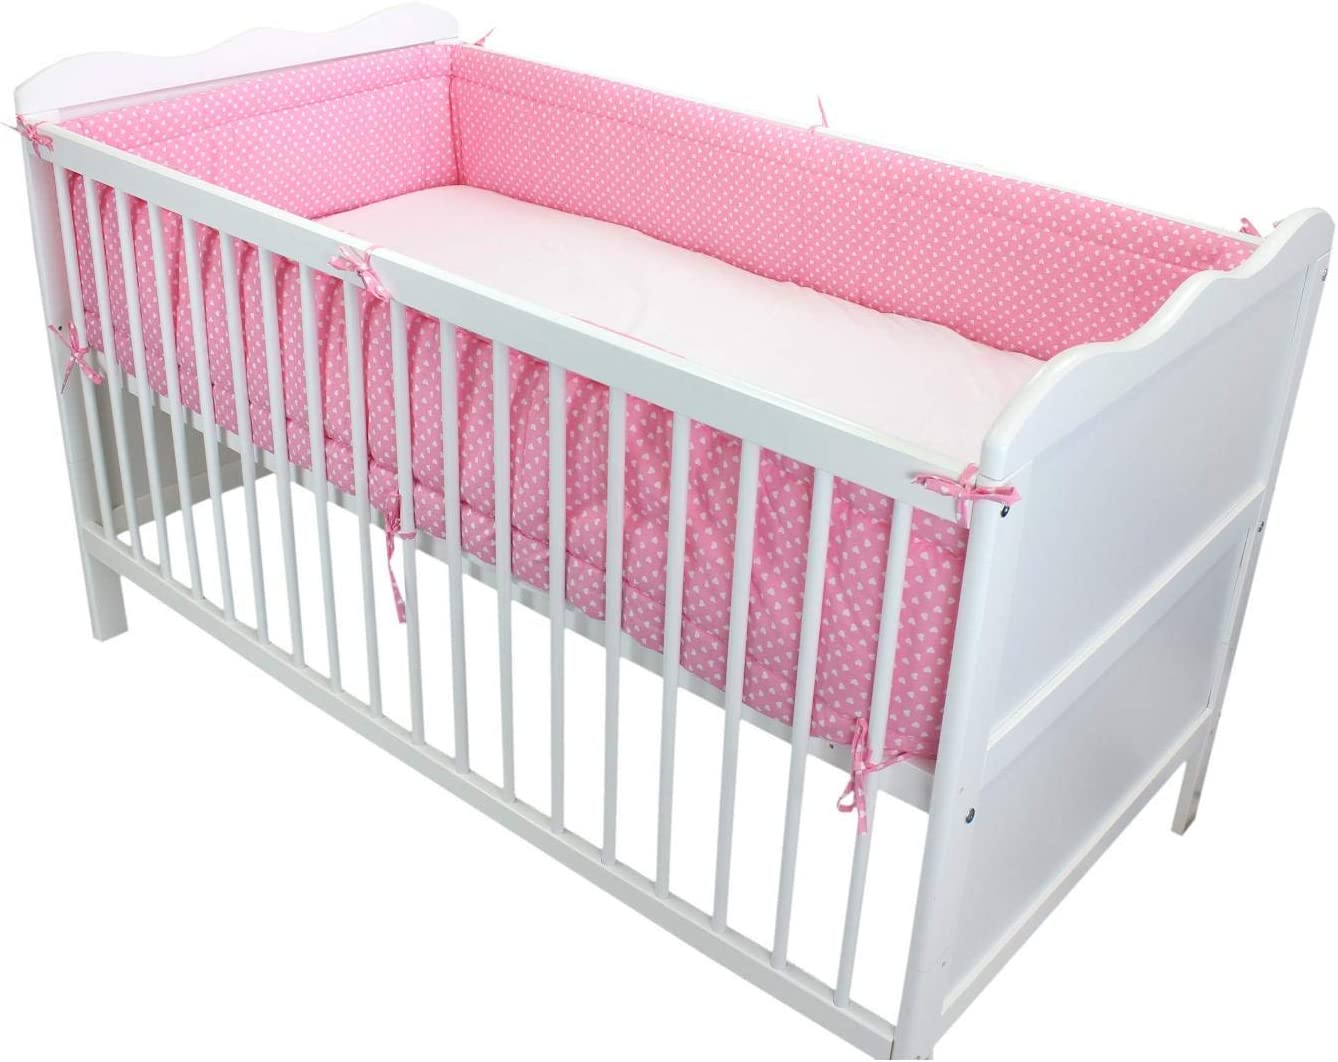 Cot 140x70 cm TupTam Baby Cot Bumper All Around Padded Bed Protection Stars Blue 420x30 cm